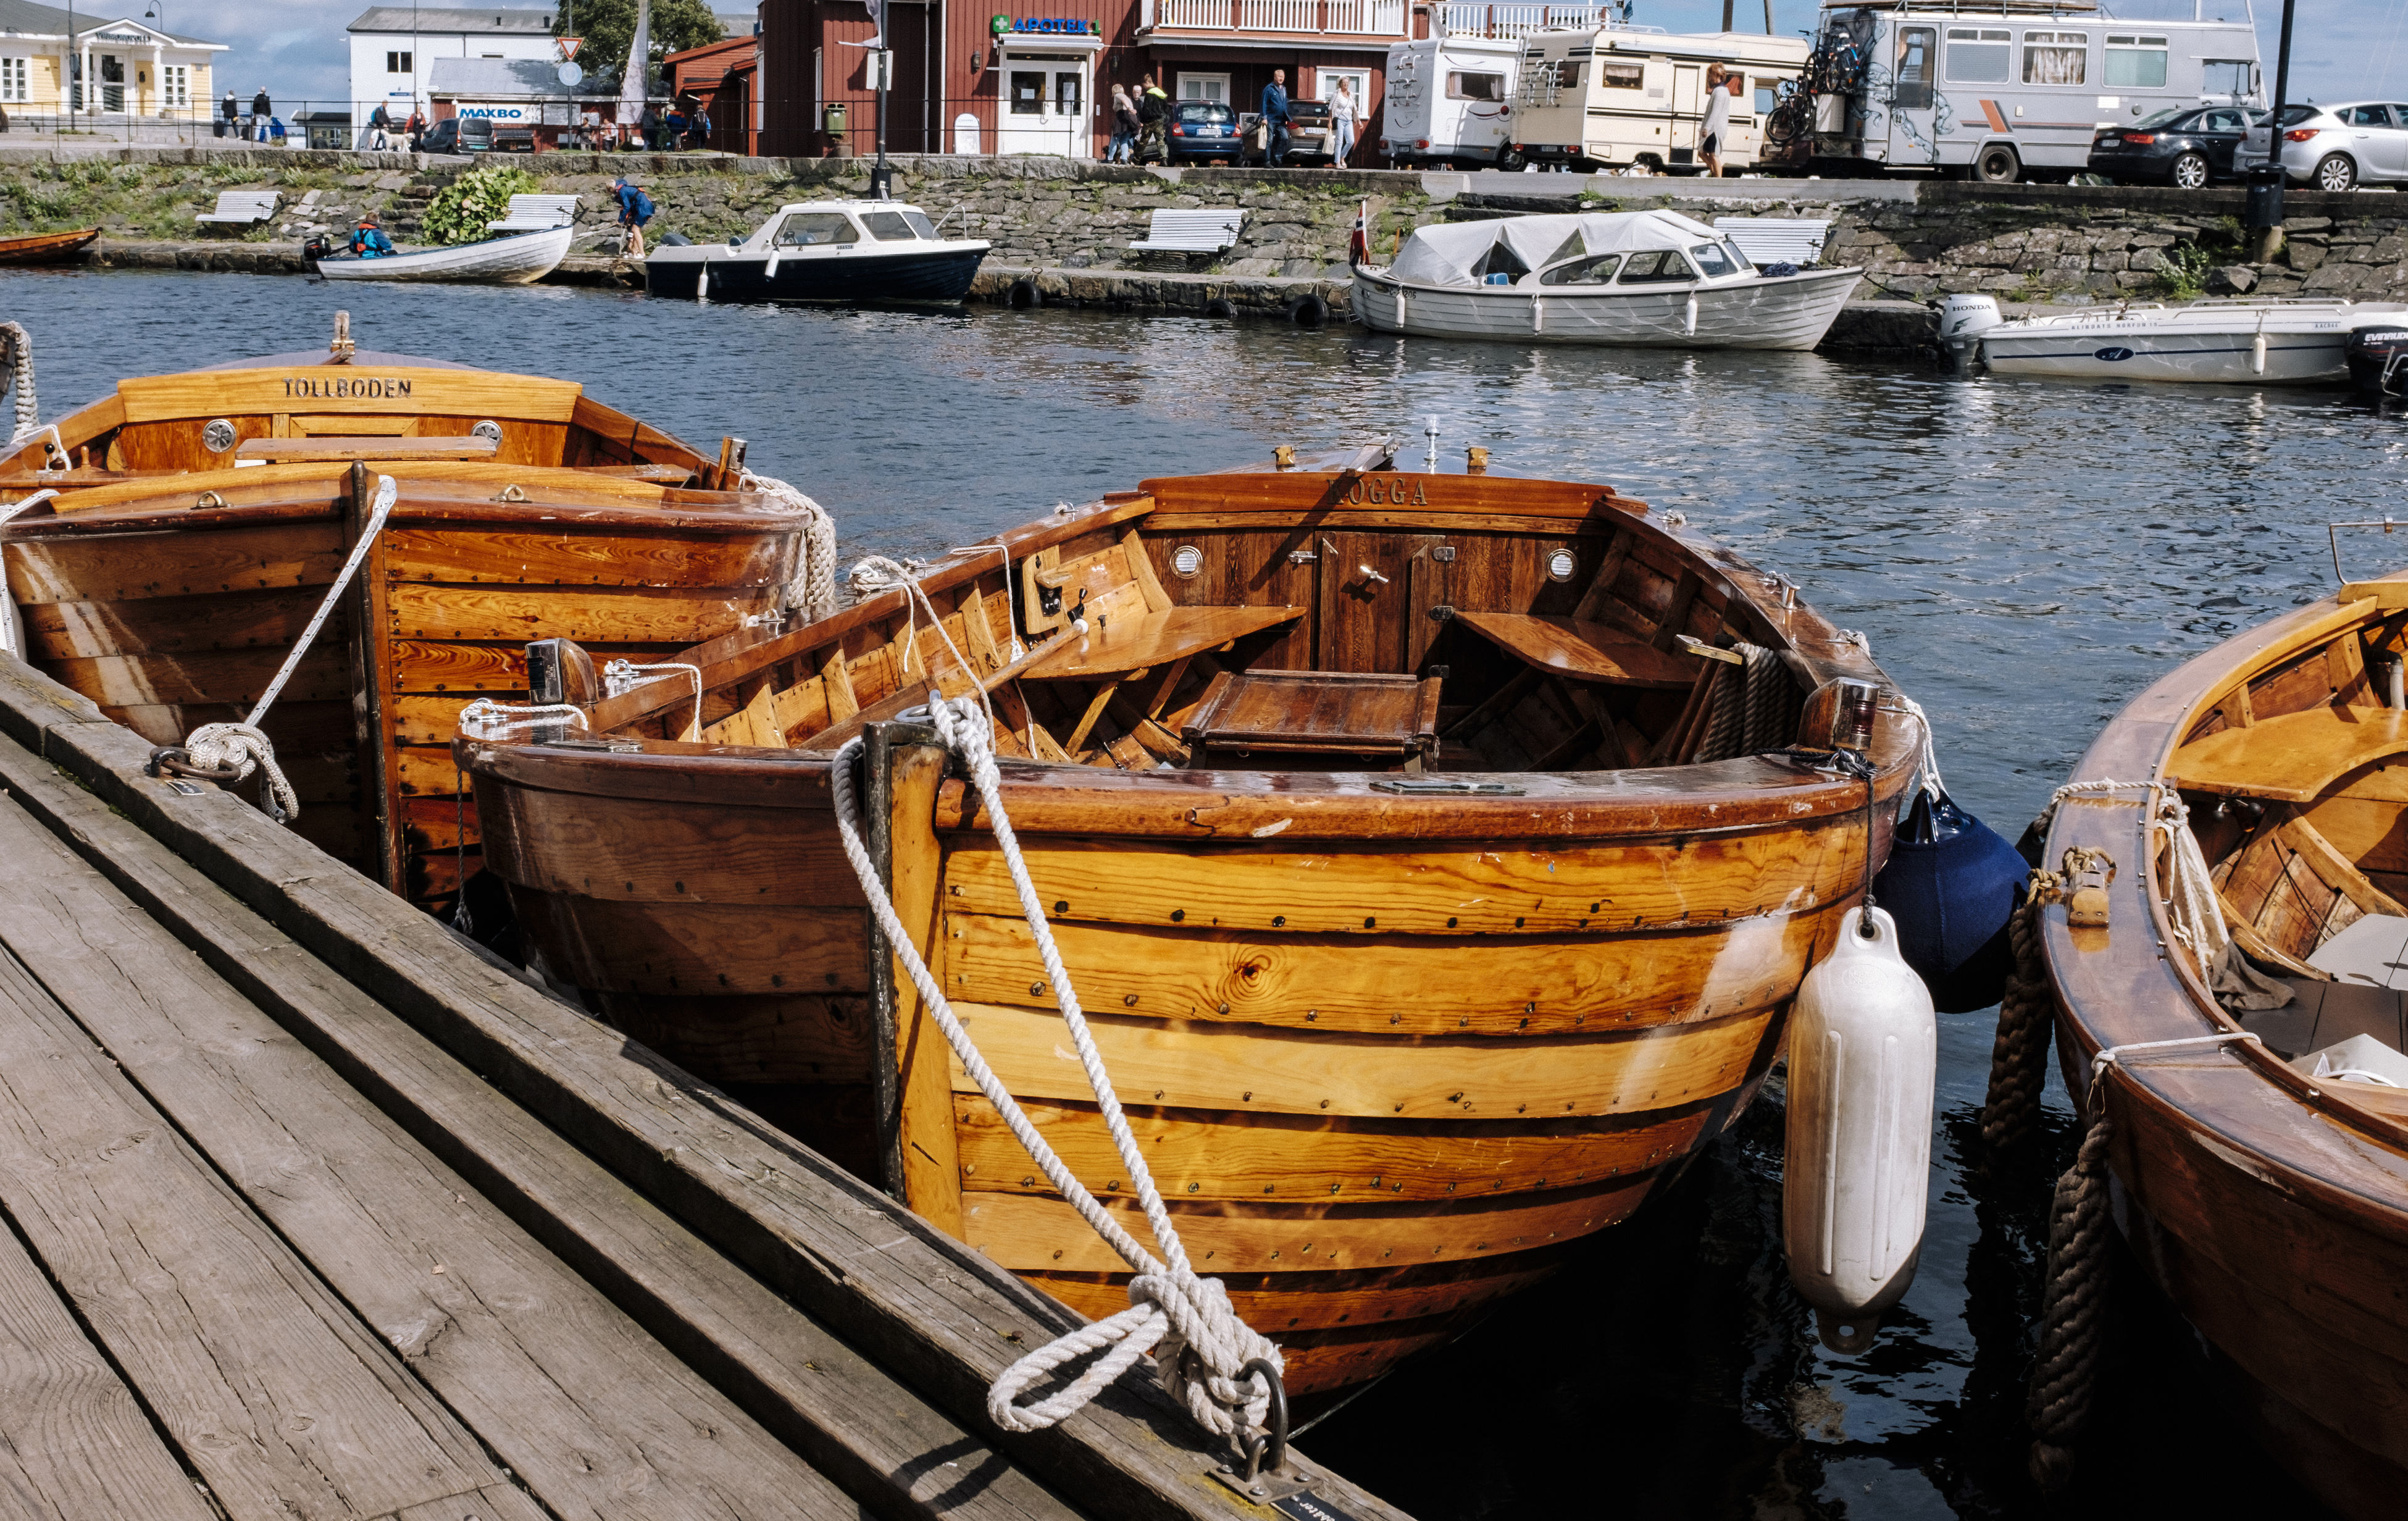 Wooden Boats in Norway Adventure Boat Boat Tied Up Boating Harbor Holiday Jetty Mode Of Transport Moored Mooring Nautical Vessel Outdoors Sunset Transportation Vikings  Water Wooden Boat